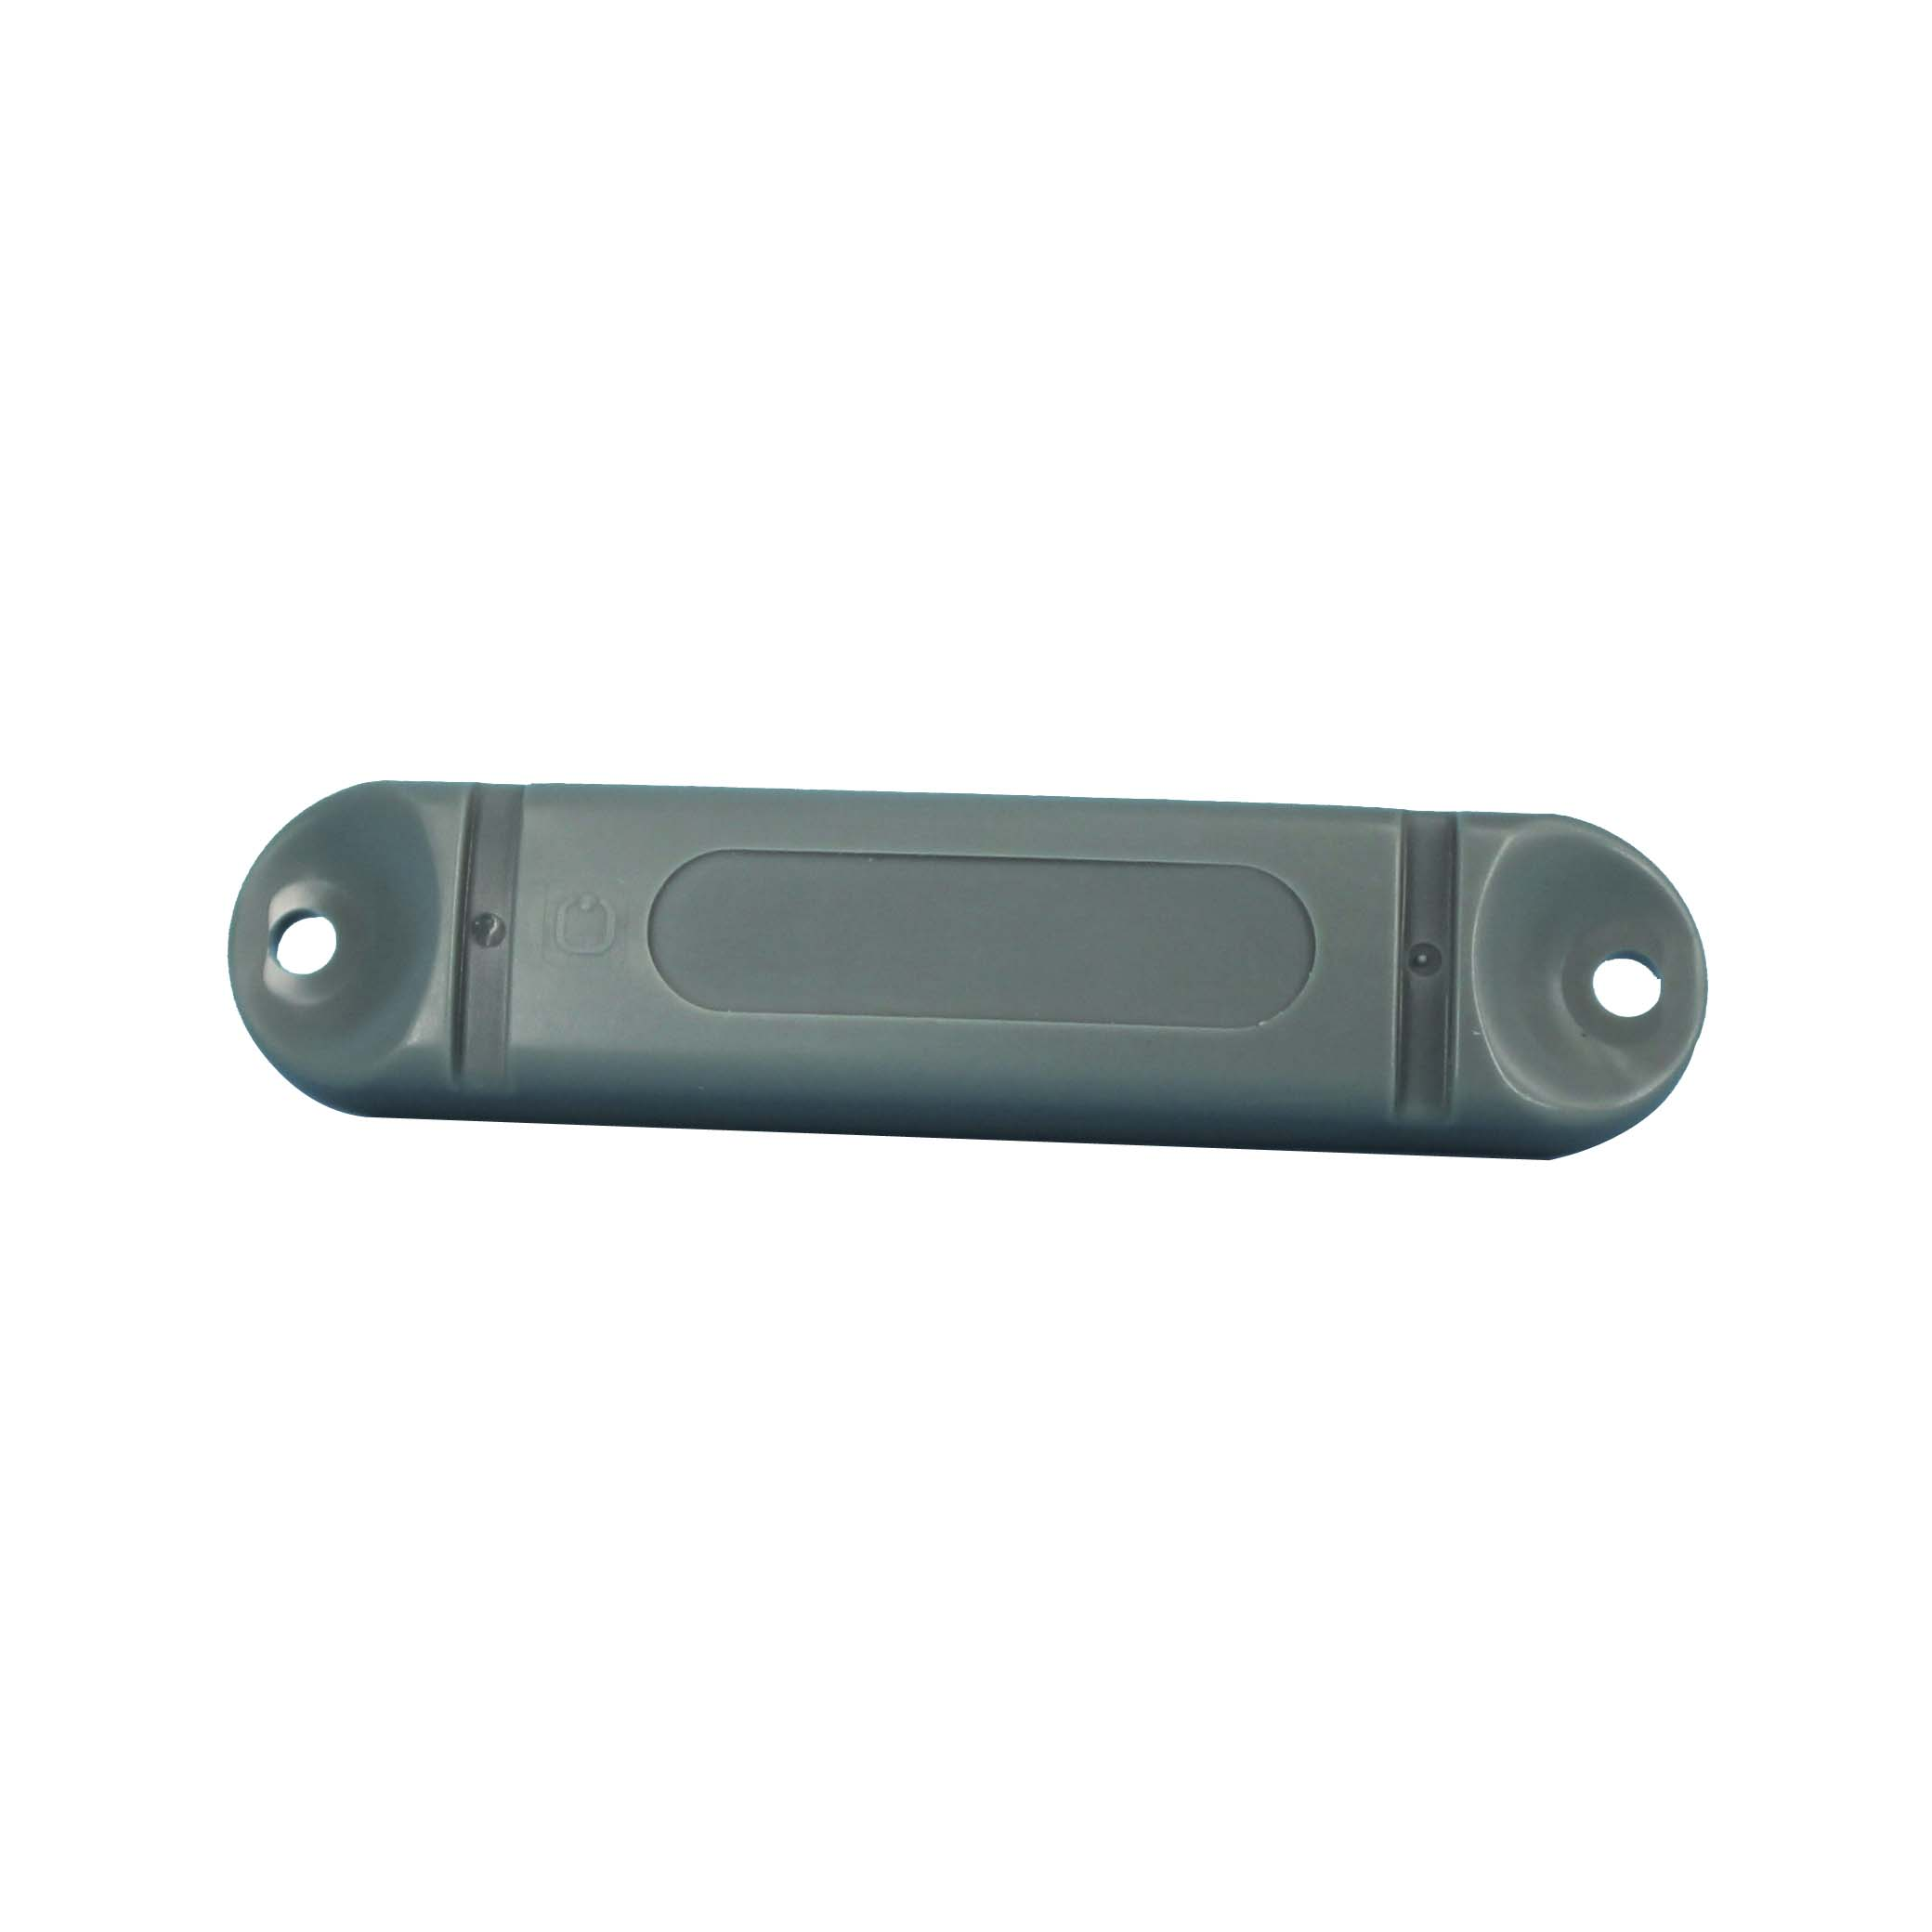 VT-83Q ABS RFID metal tag